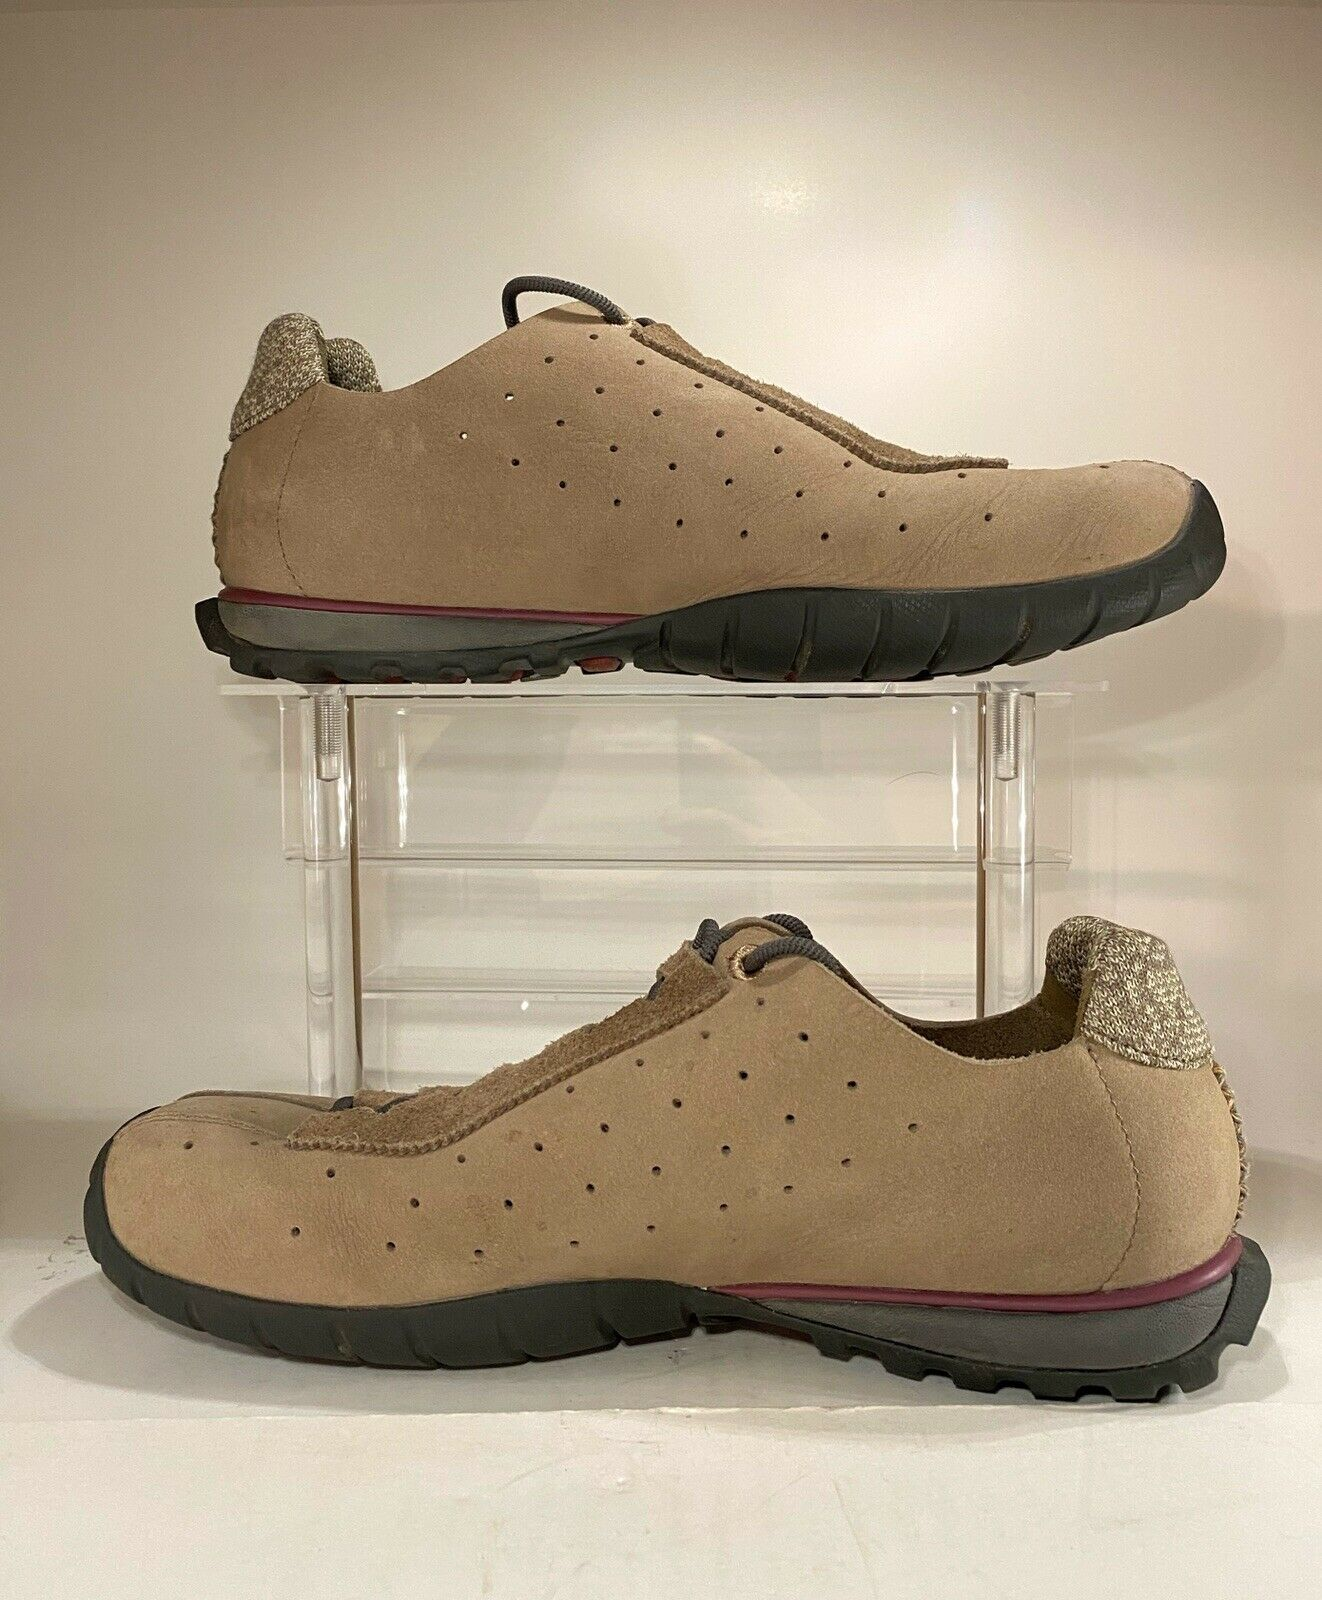 Timberland Smart Wool, Outdoor Performance Tan Suede Shoes, US Sz 8 SAMPLE